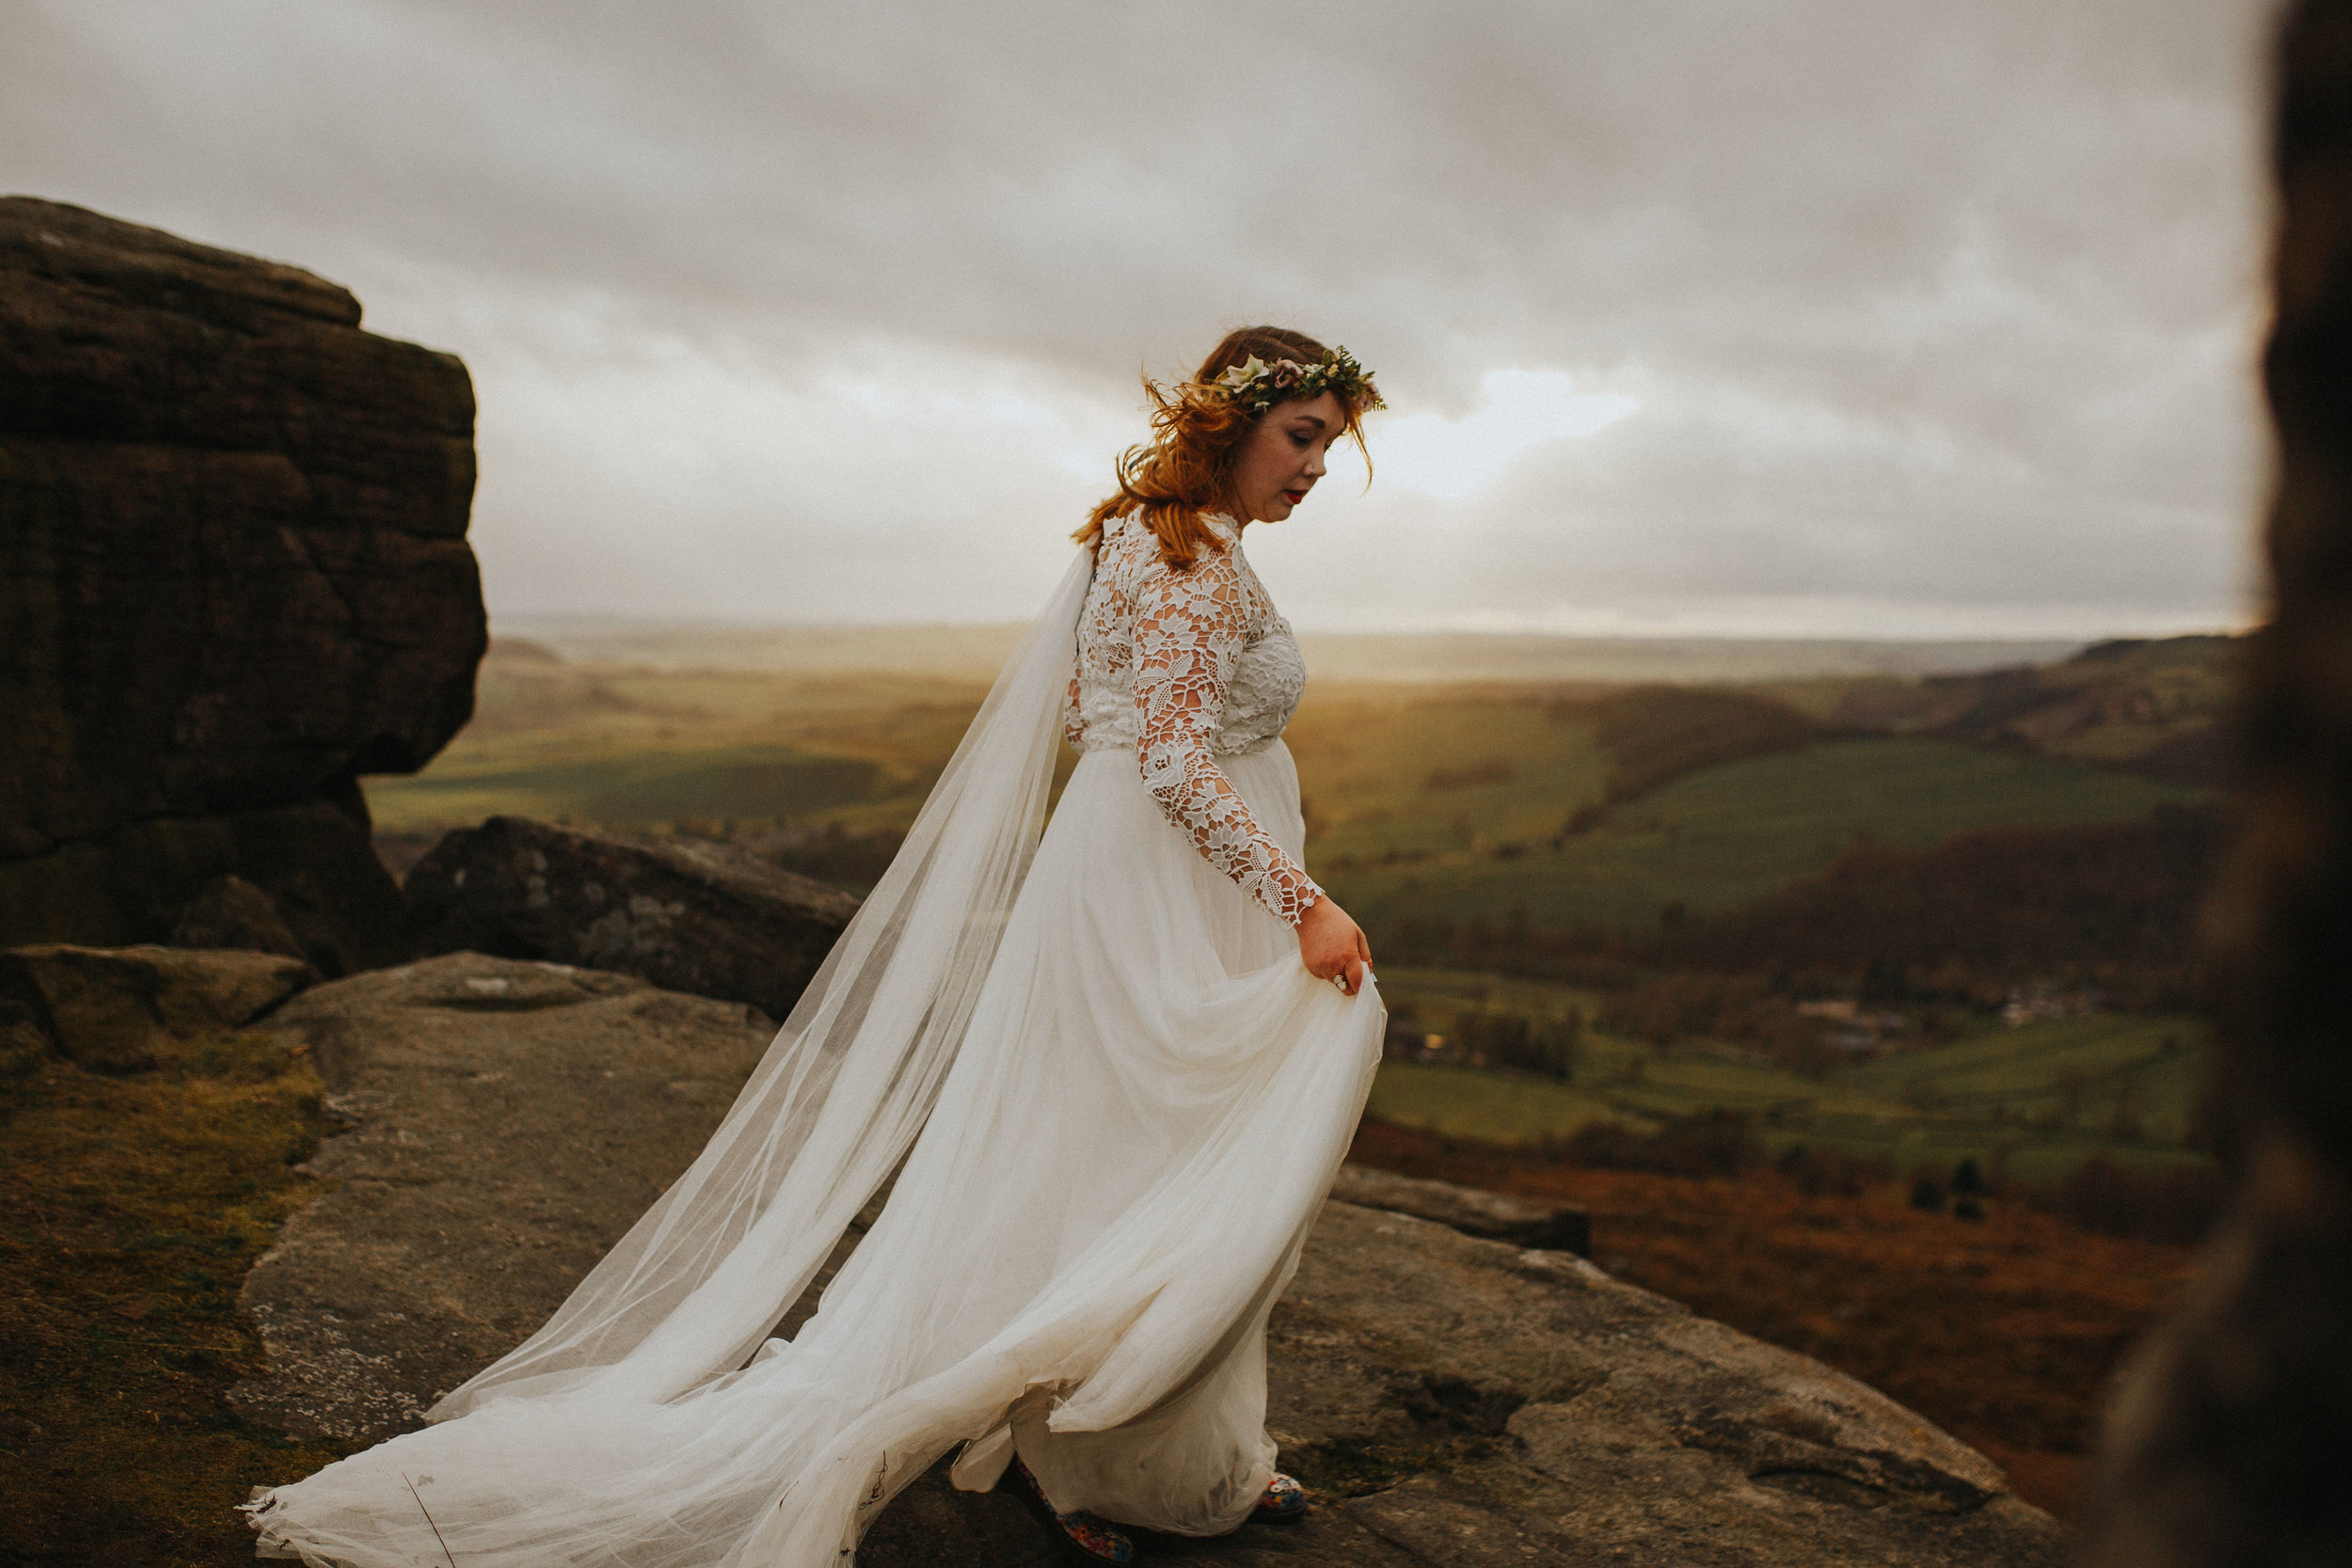 Rosie-peak district-bride-bespoke-long sleeved-lace-tulle-winter-wedding-dress-matlock-susanna-greening-11